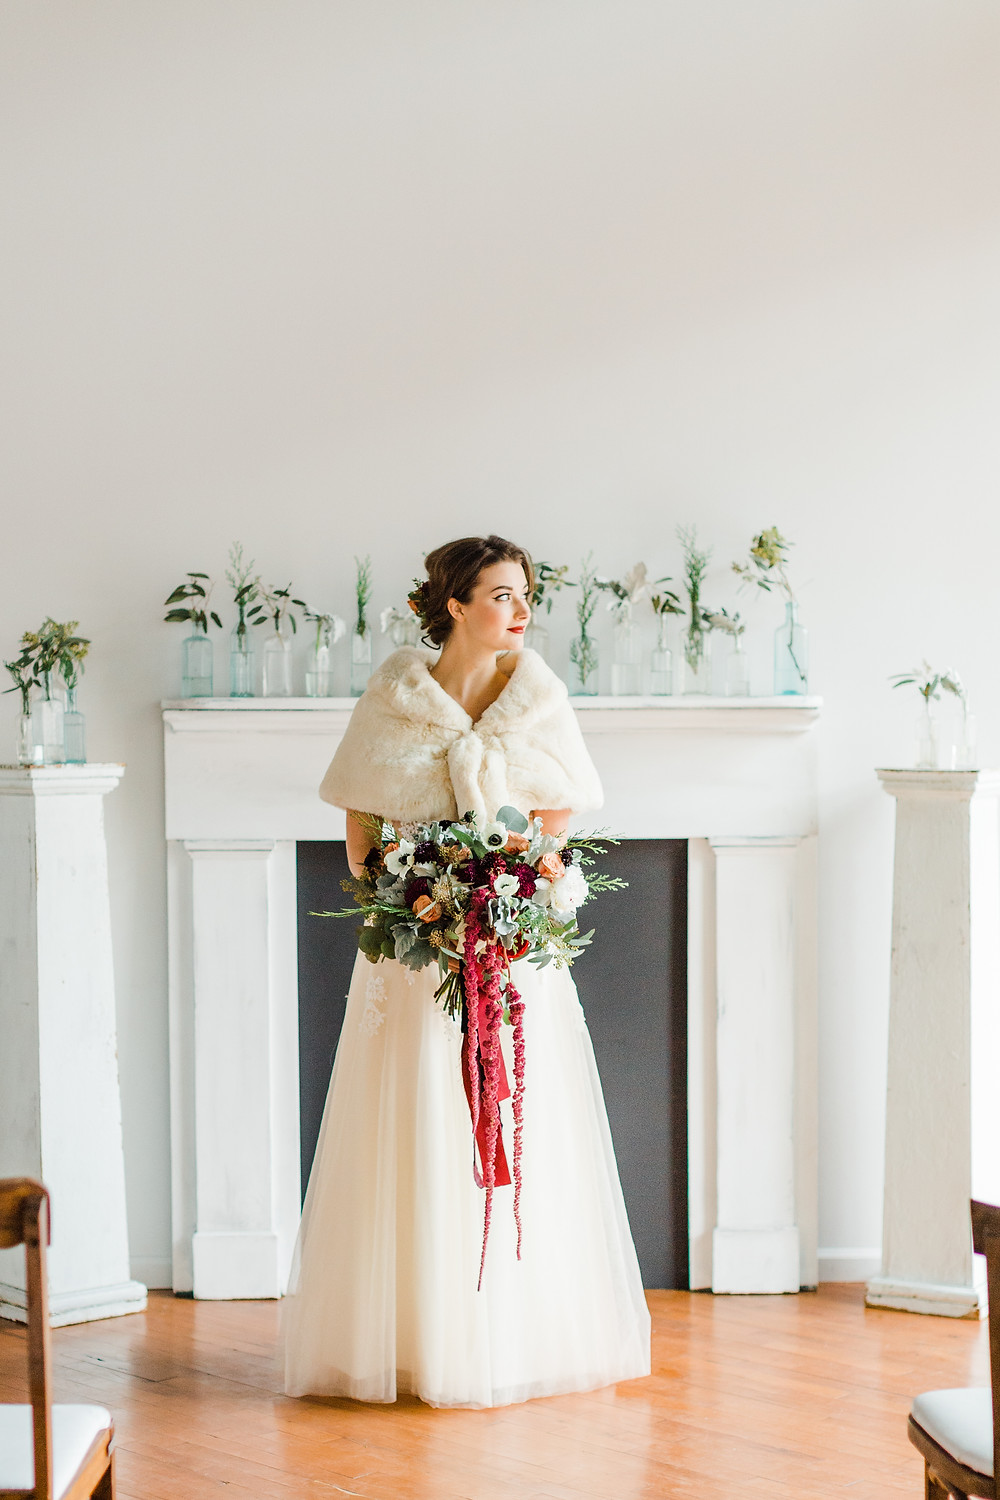 Winter whites and simple florals touched with burgundy accents. Photo Credit: Mandi Forbes Photography